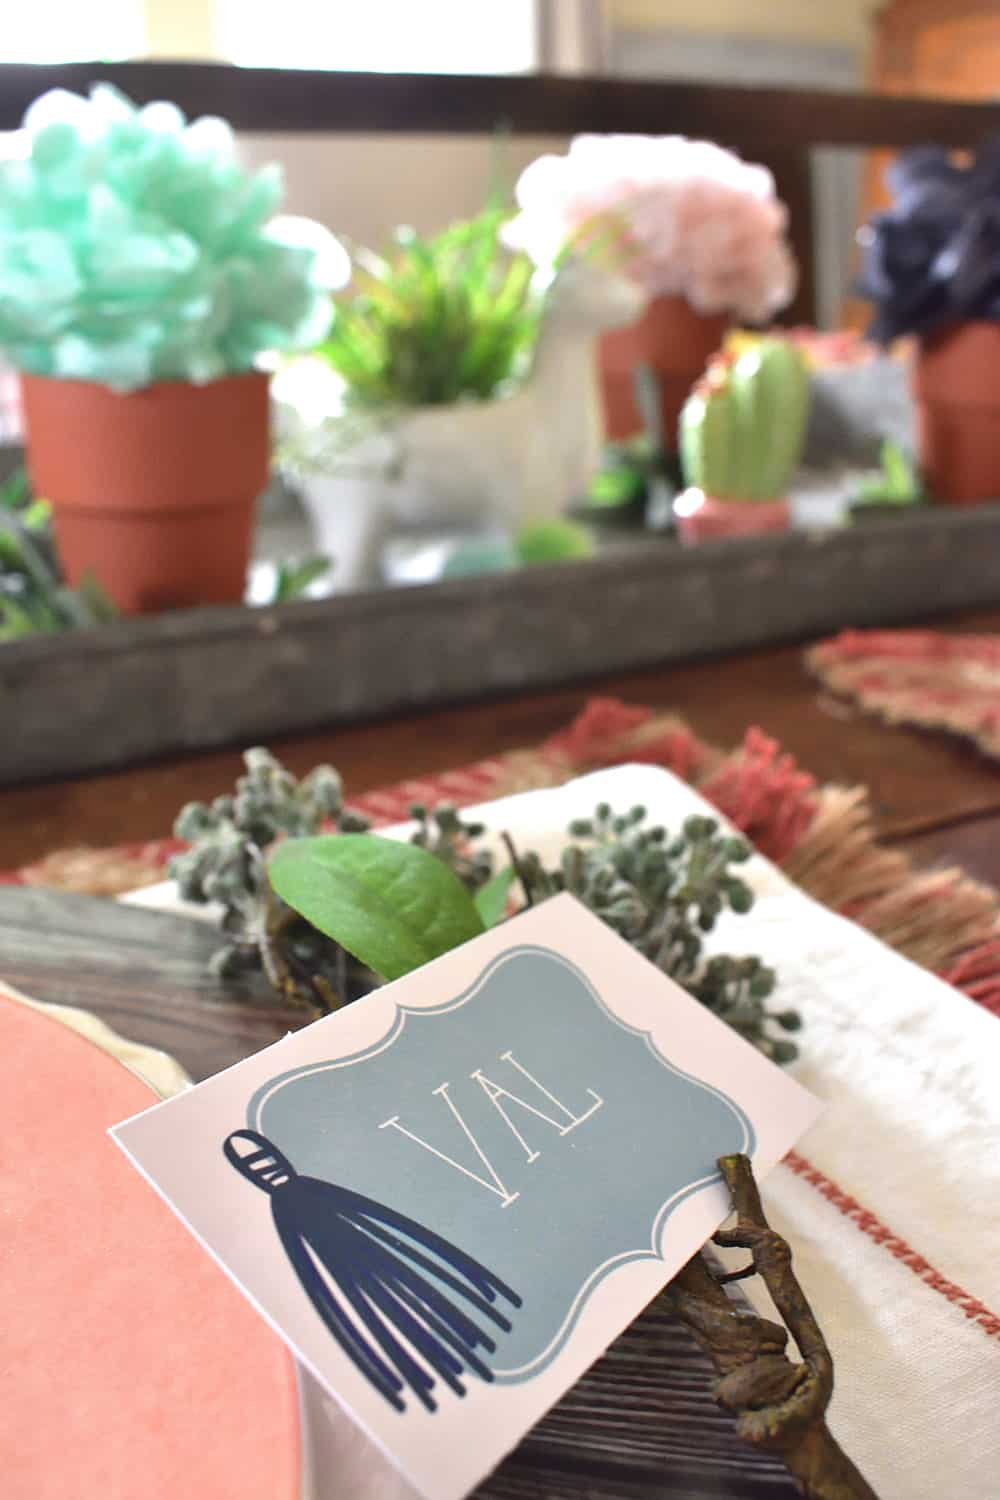 Free Southwest Style Place Cards from Elva M Design Studio